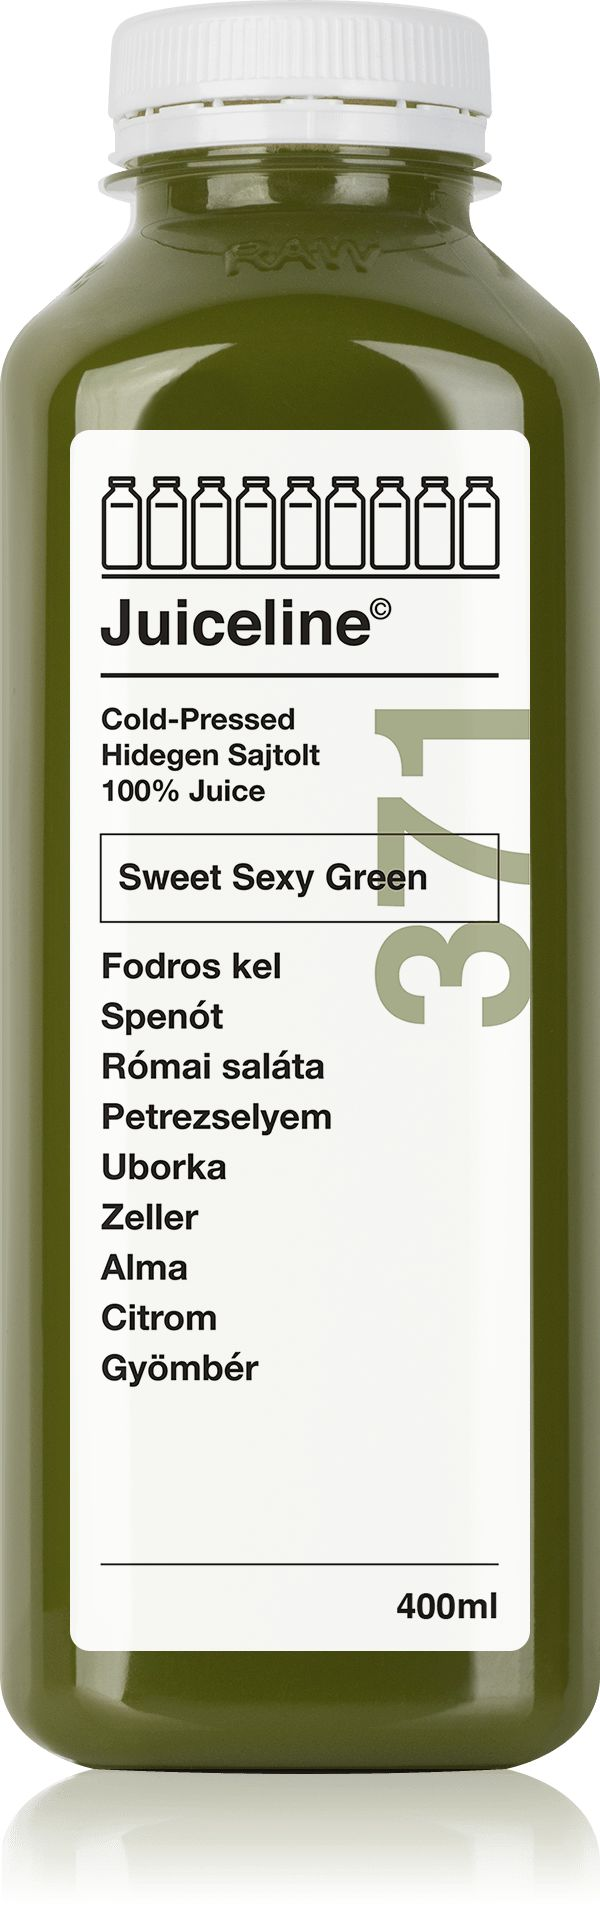 371 Sweet Sexy Green 400ml